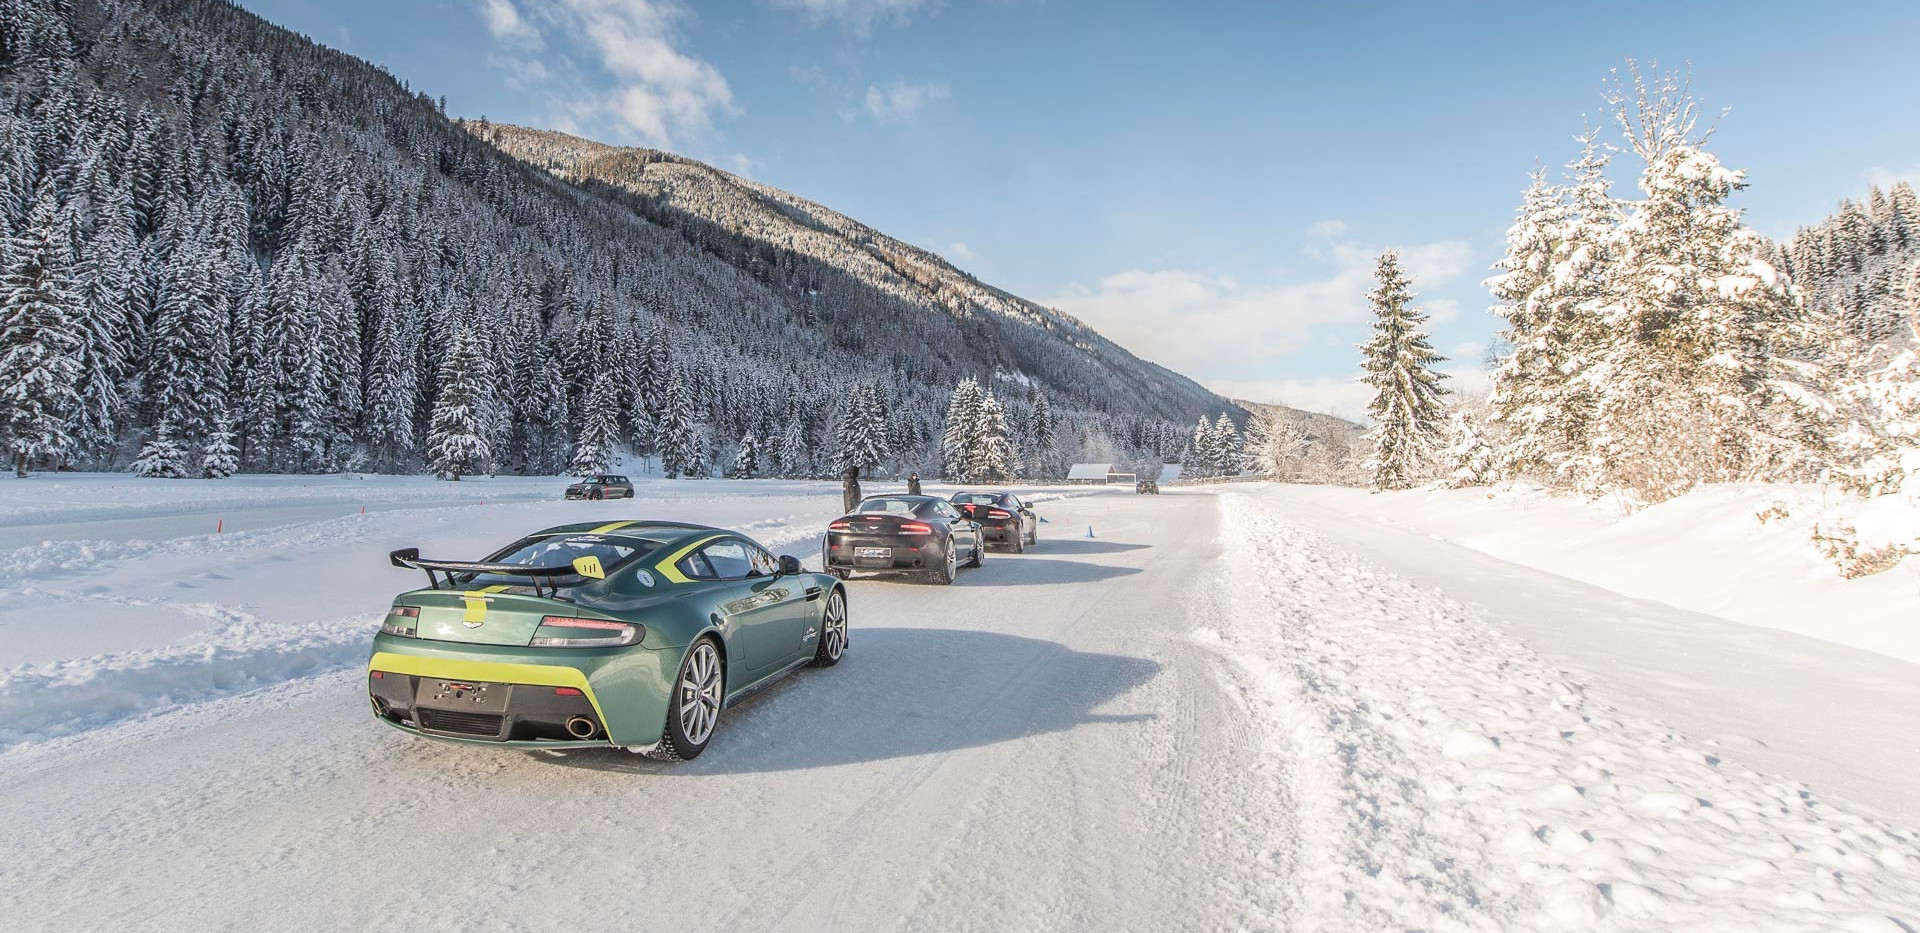 Aston Martin, Track Day, Performance Traiming, License to Race, Rennstrecke, Auto, Caterham, Hockenheimring, Nürburgring, Spa Francorchamps, Bilster Berg, Boxberg